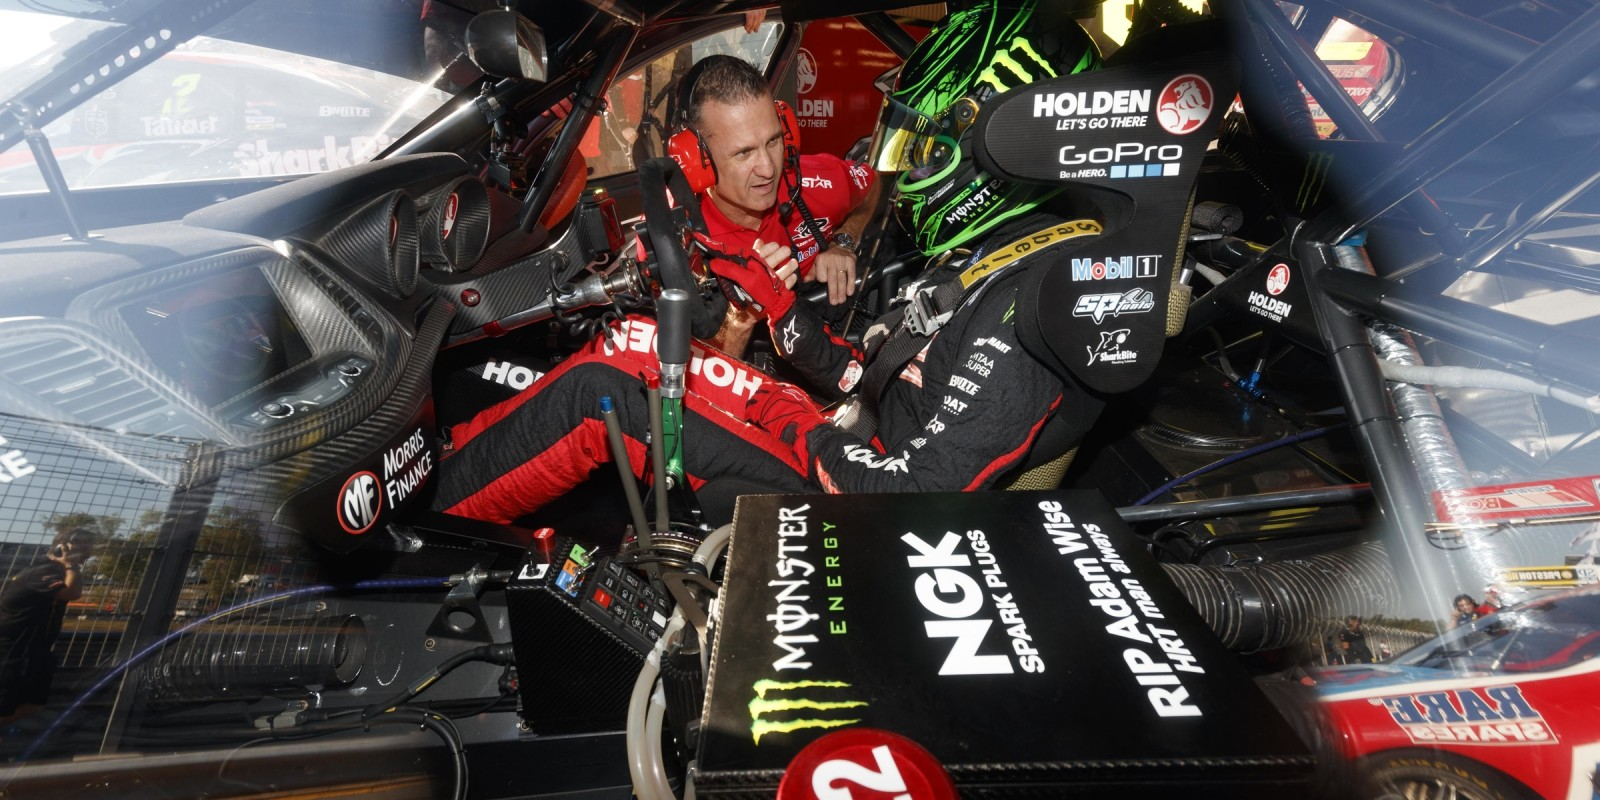 Supercars - Darwin - 2016 Holden Race Team - James Courtney